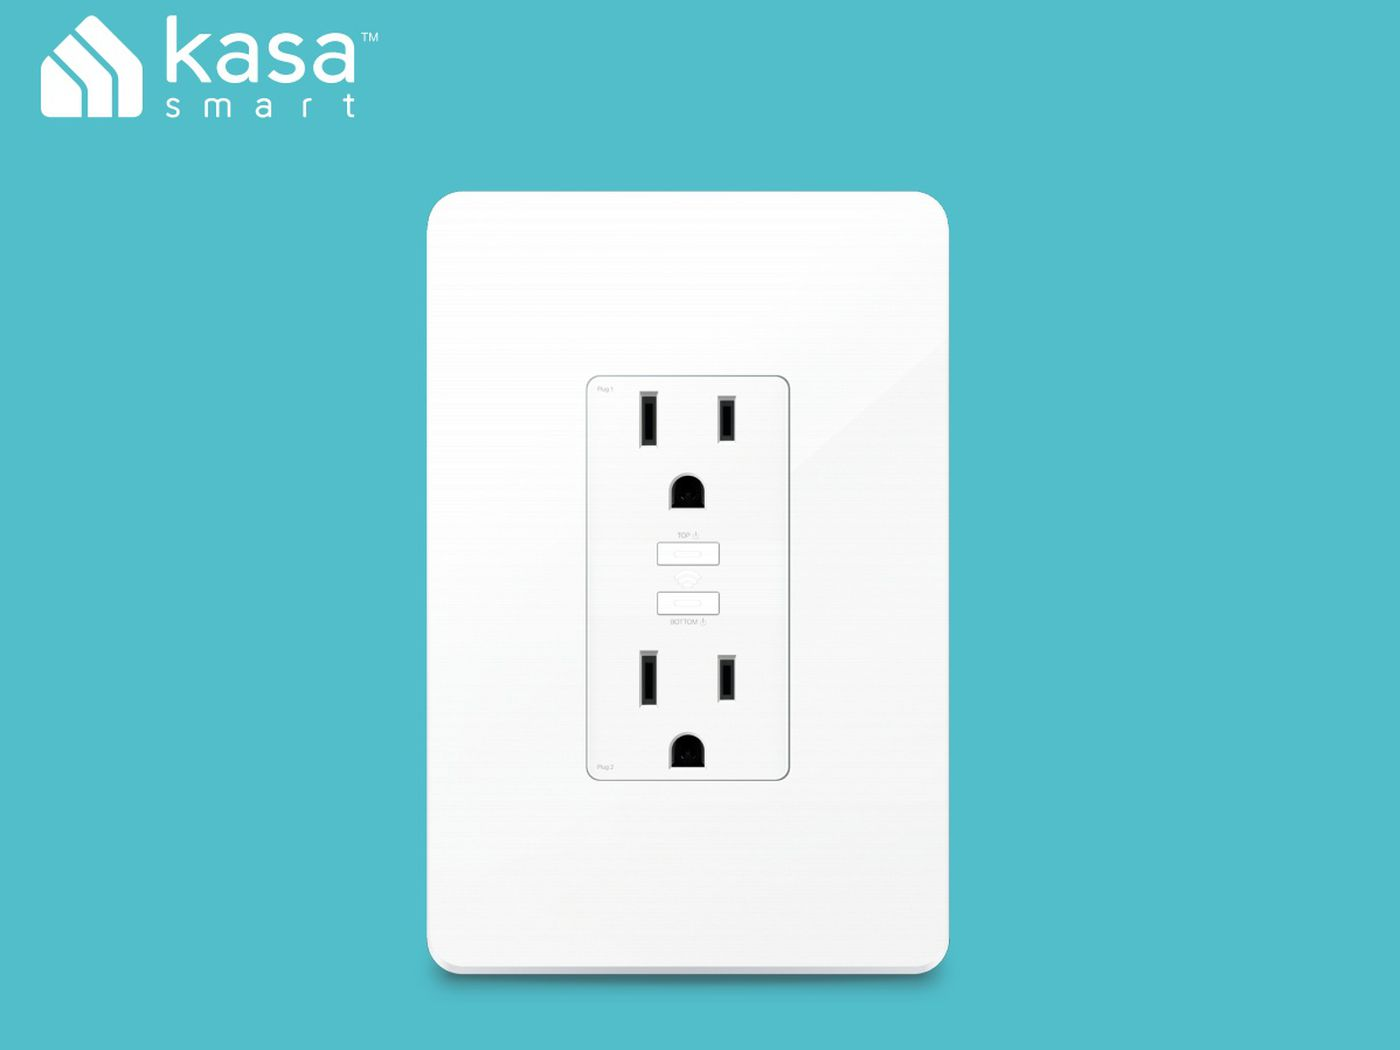 TP-Link KP200 smart outlet is actually an outlet, not a